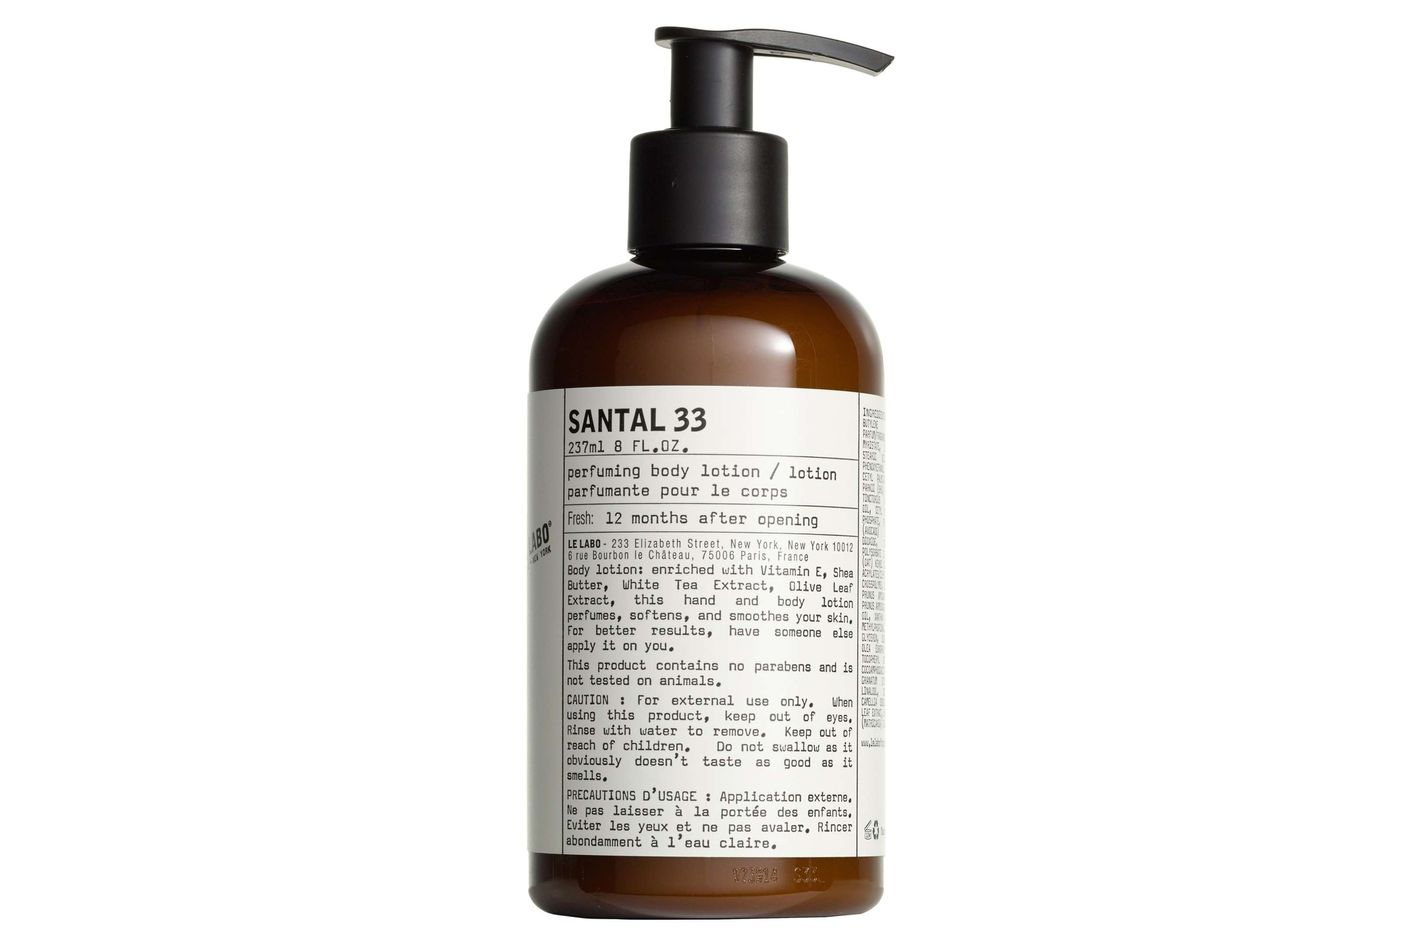 Le Labo Santal 33 Hand and Body Lotion